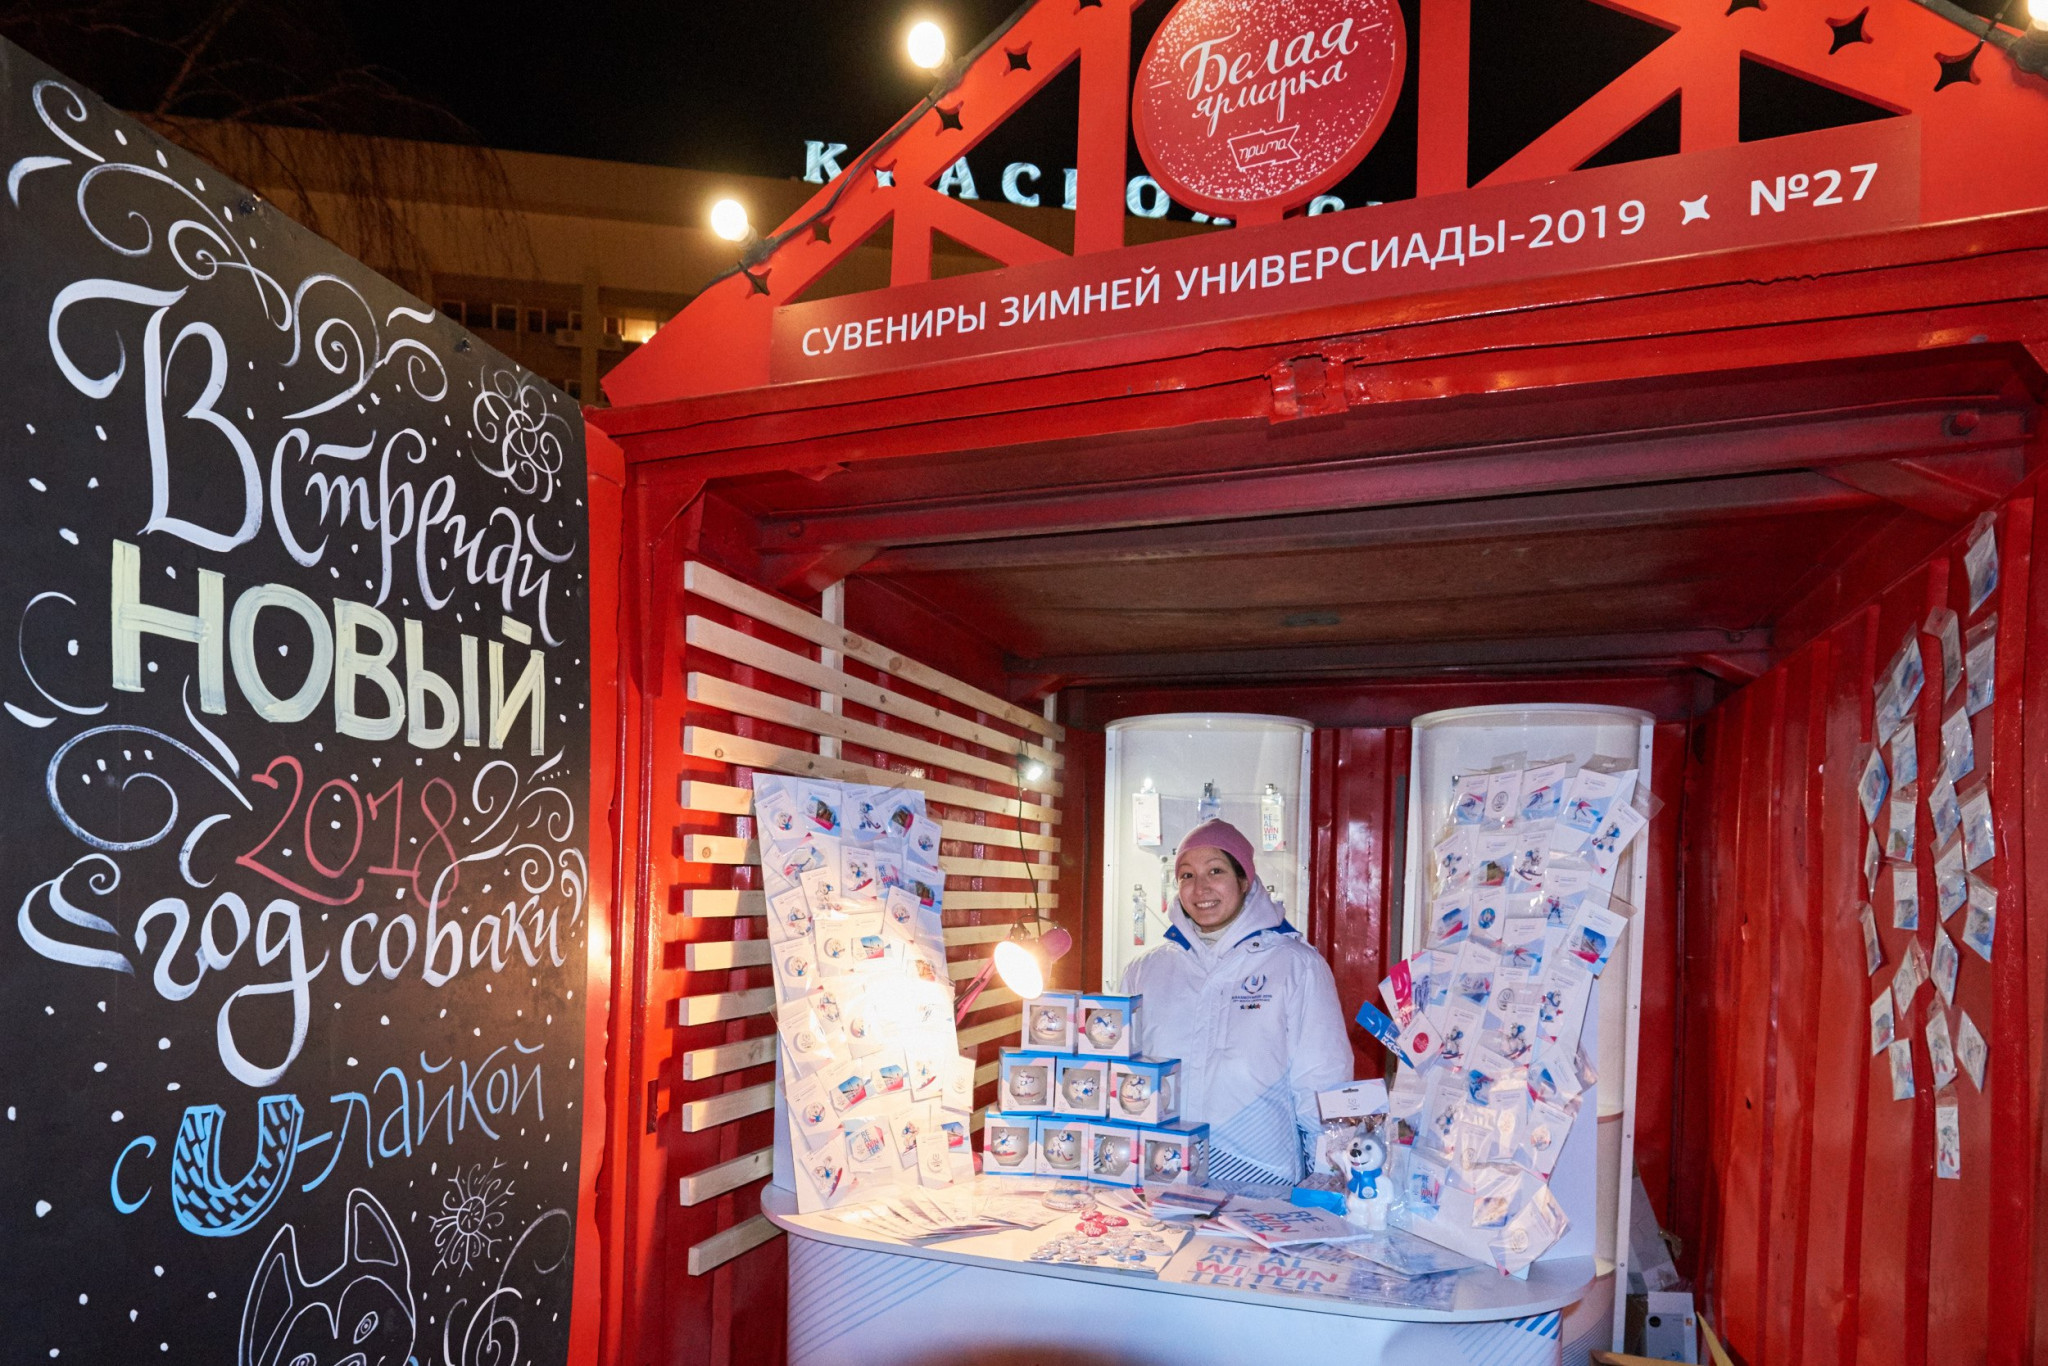 There will be 2019 Universiade souvenirs  available to buy throughout the New Year celebrations in Krasnoyarsk ©Krasnoyarsk 2019